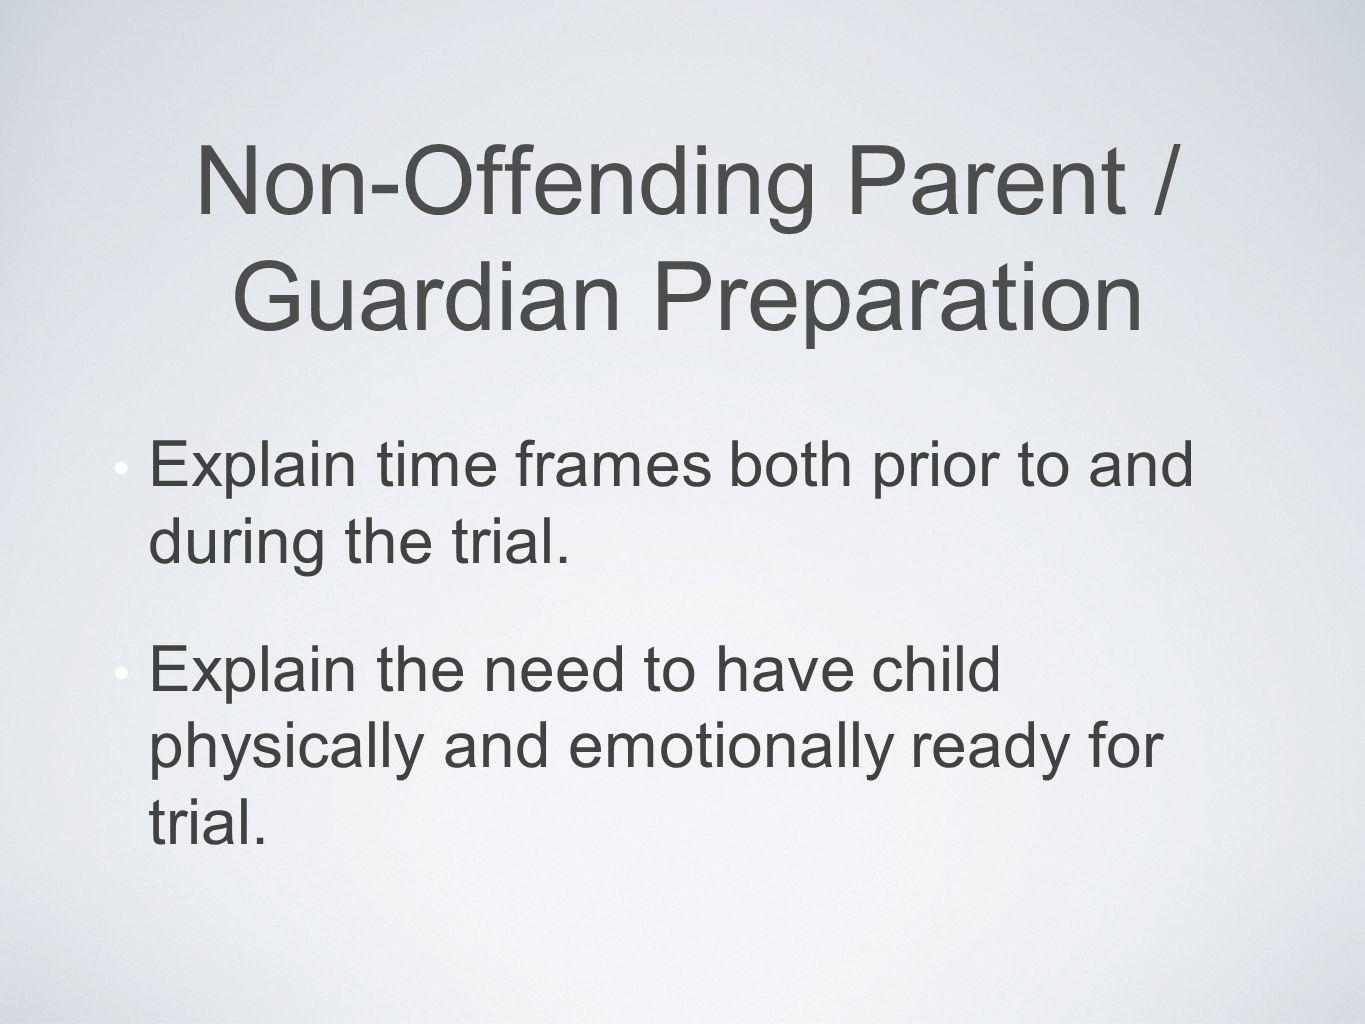 Non-Offending Parent / Guardian Preparation